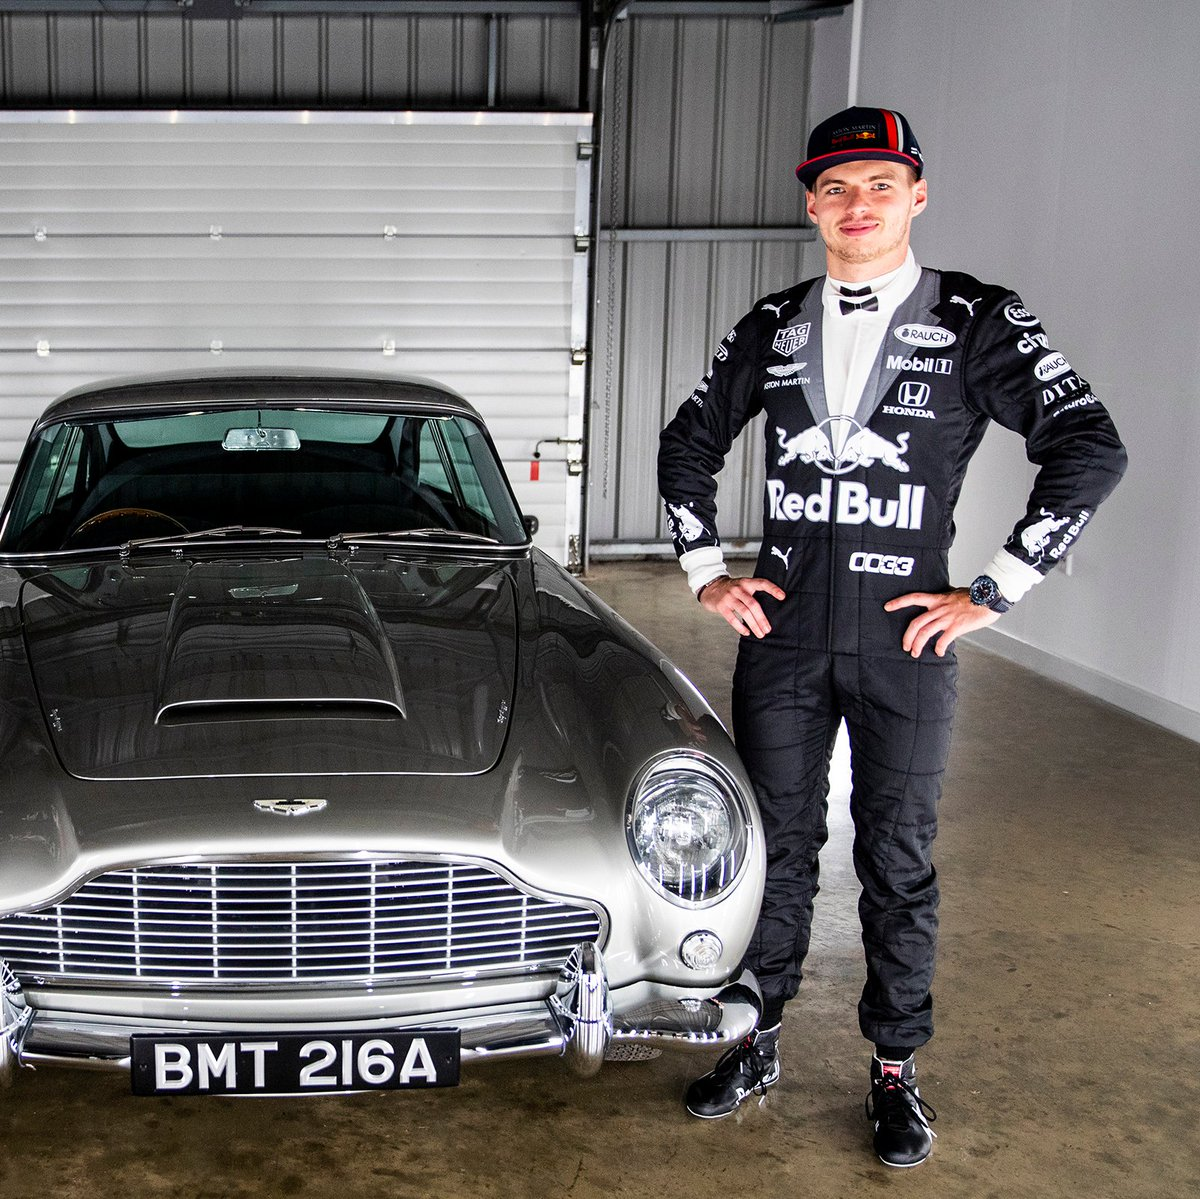 My name is Verstappen, Max Verstappen 😎 @007 #F1007 #BritishGP 🇬🇧